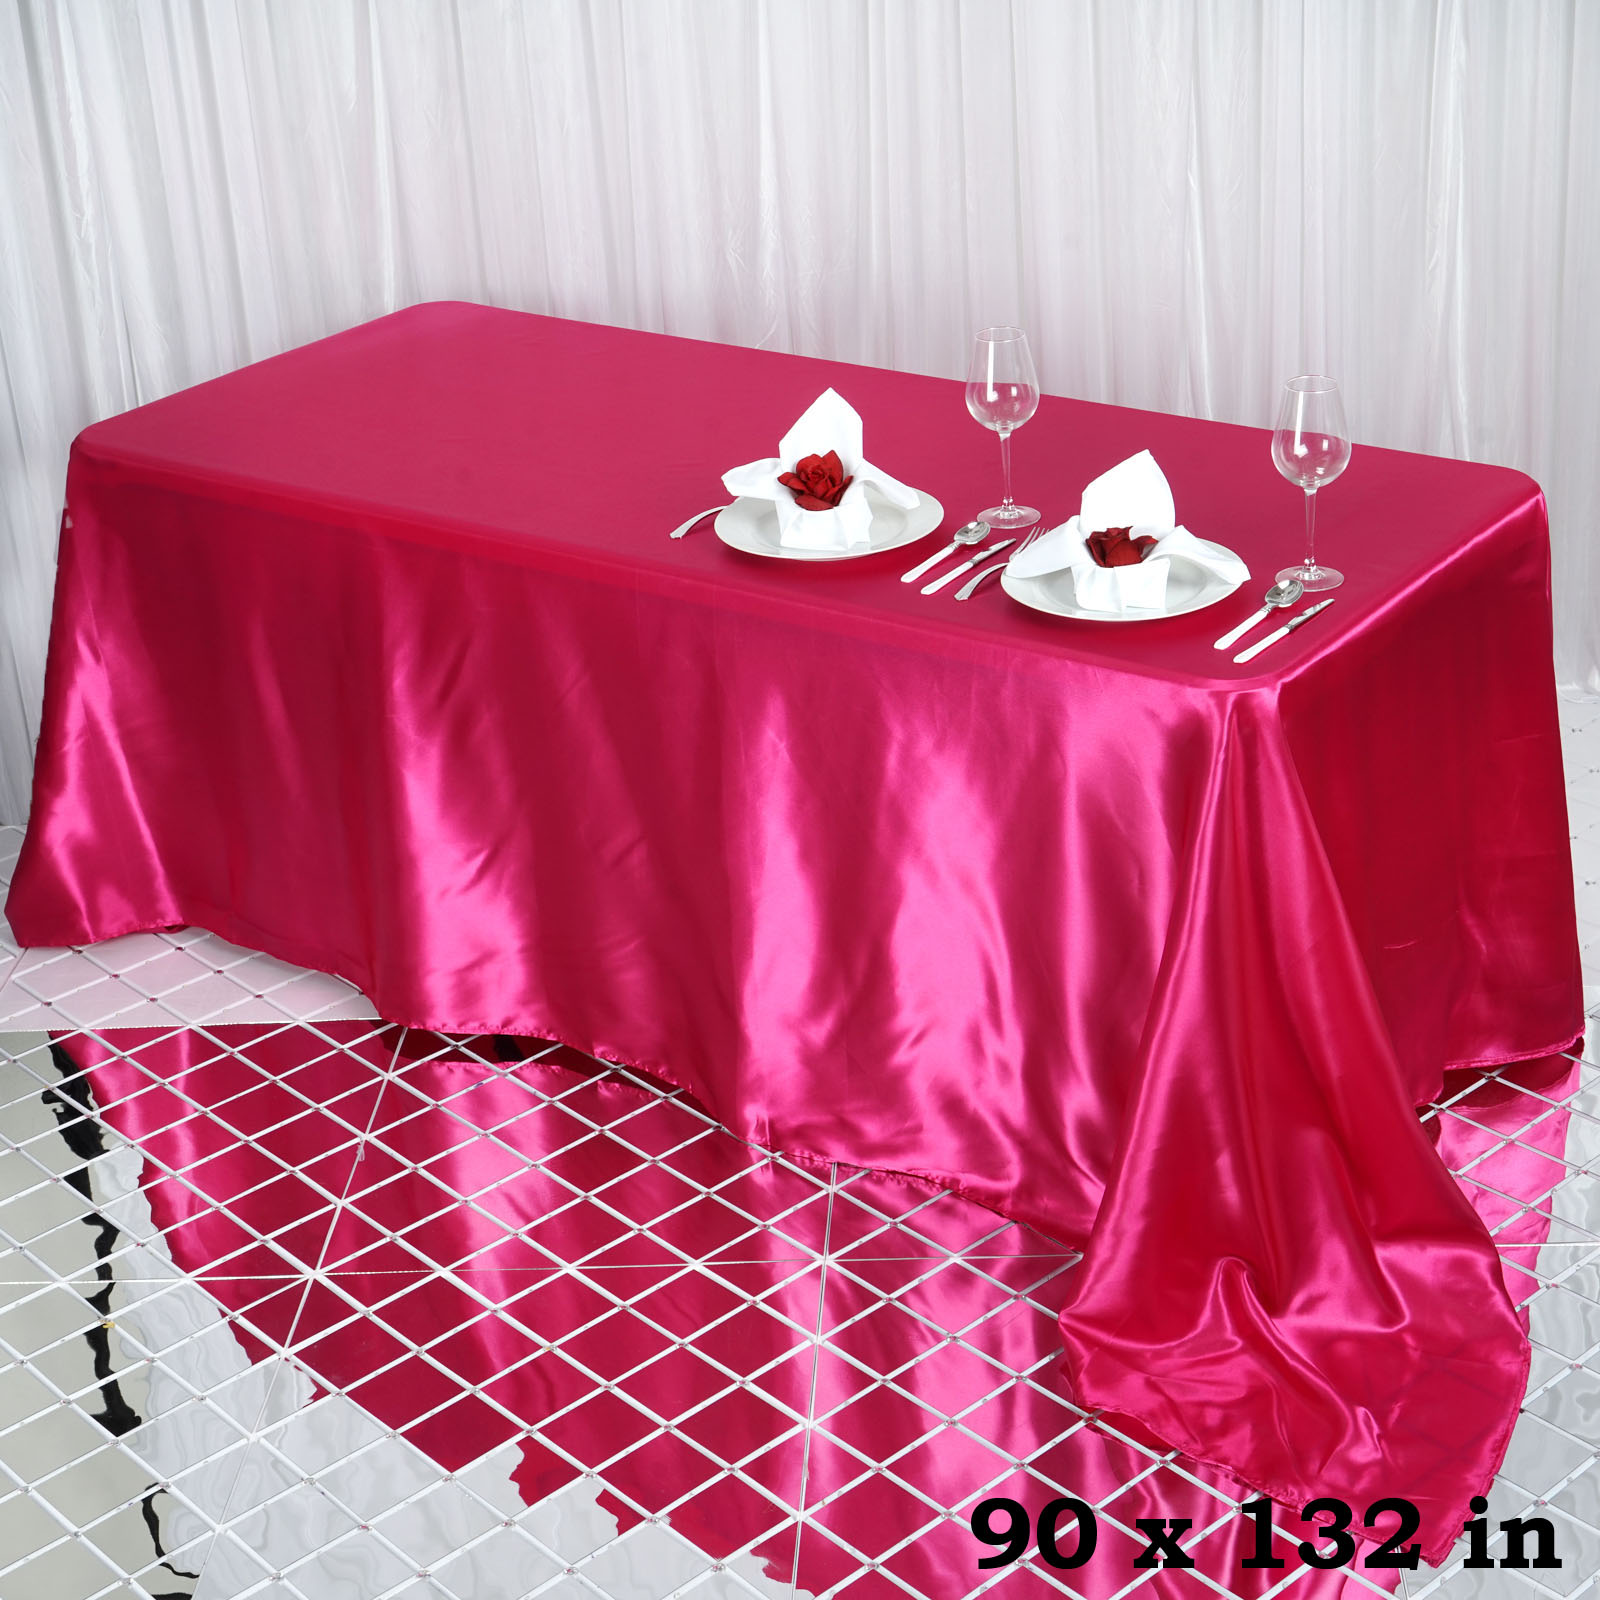 90x132-034-Rectangle-Satin-Tablecloth-For-Wedding-Party-Banquet-Events-Decoration thumbnail 35